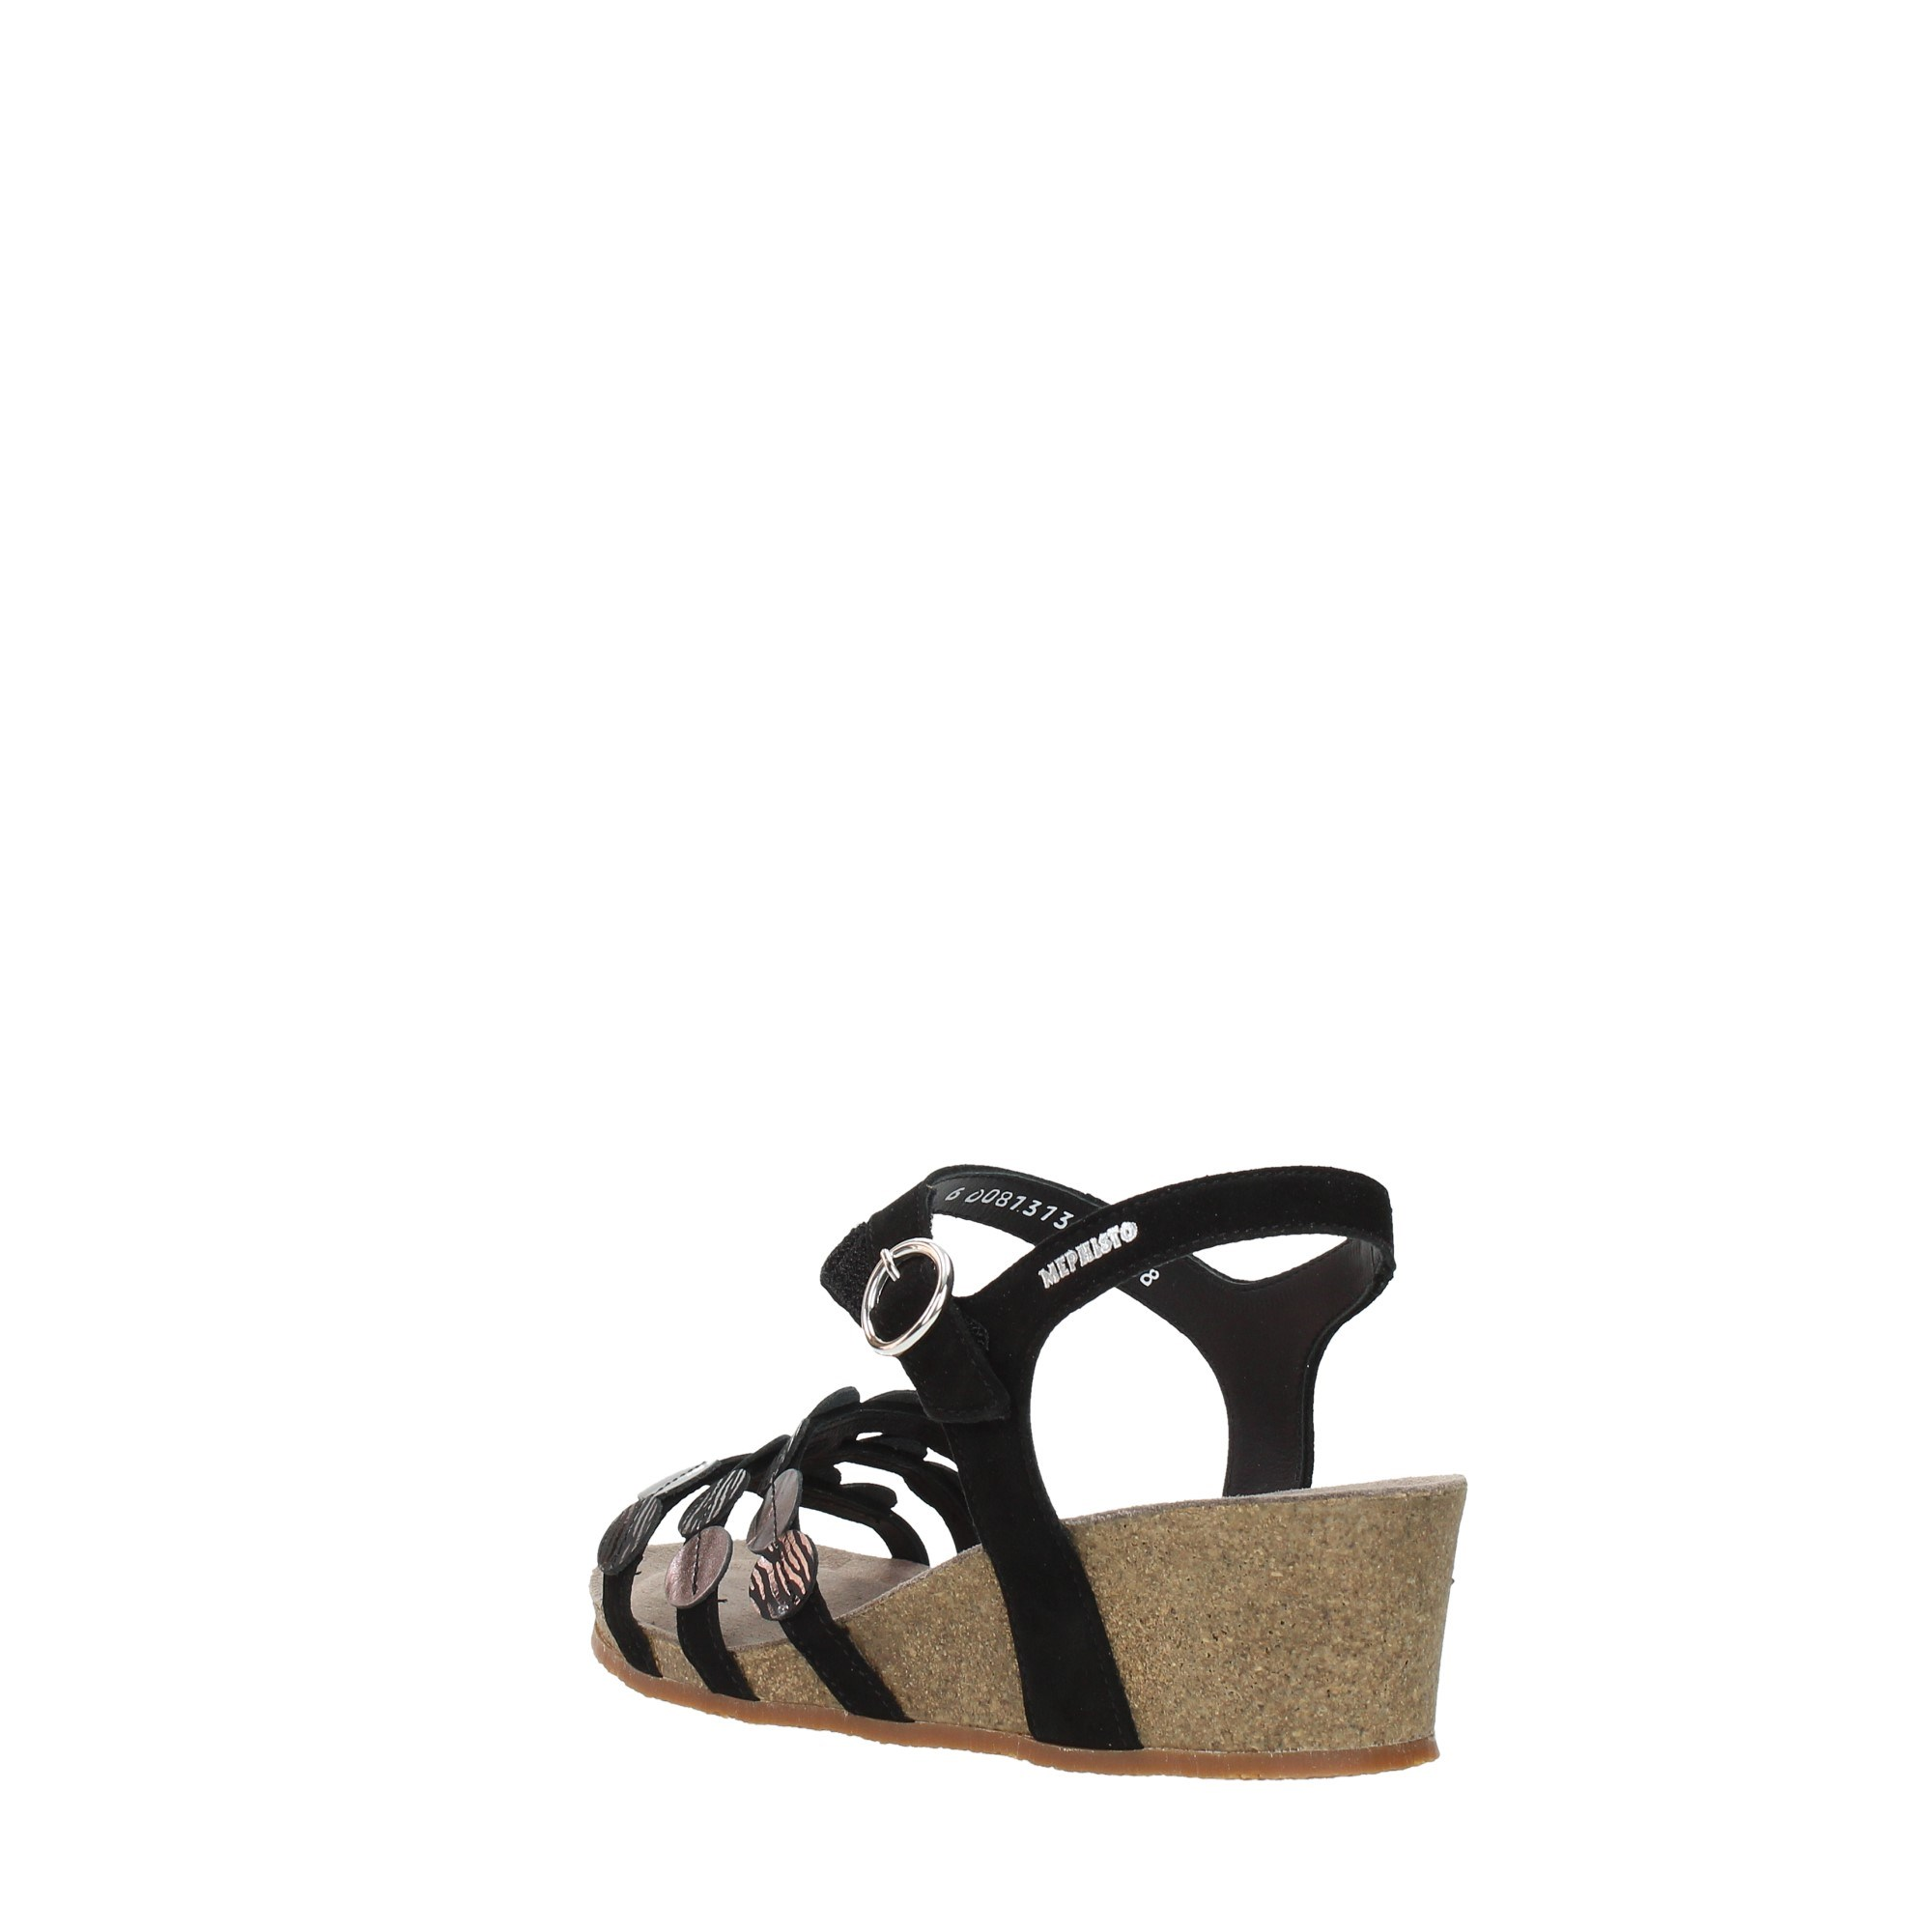 Mephisto Shoes Women Wedge Sandals Black MATILDE